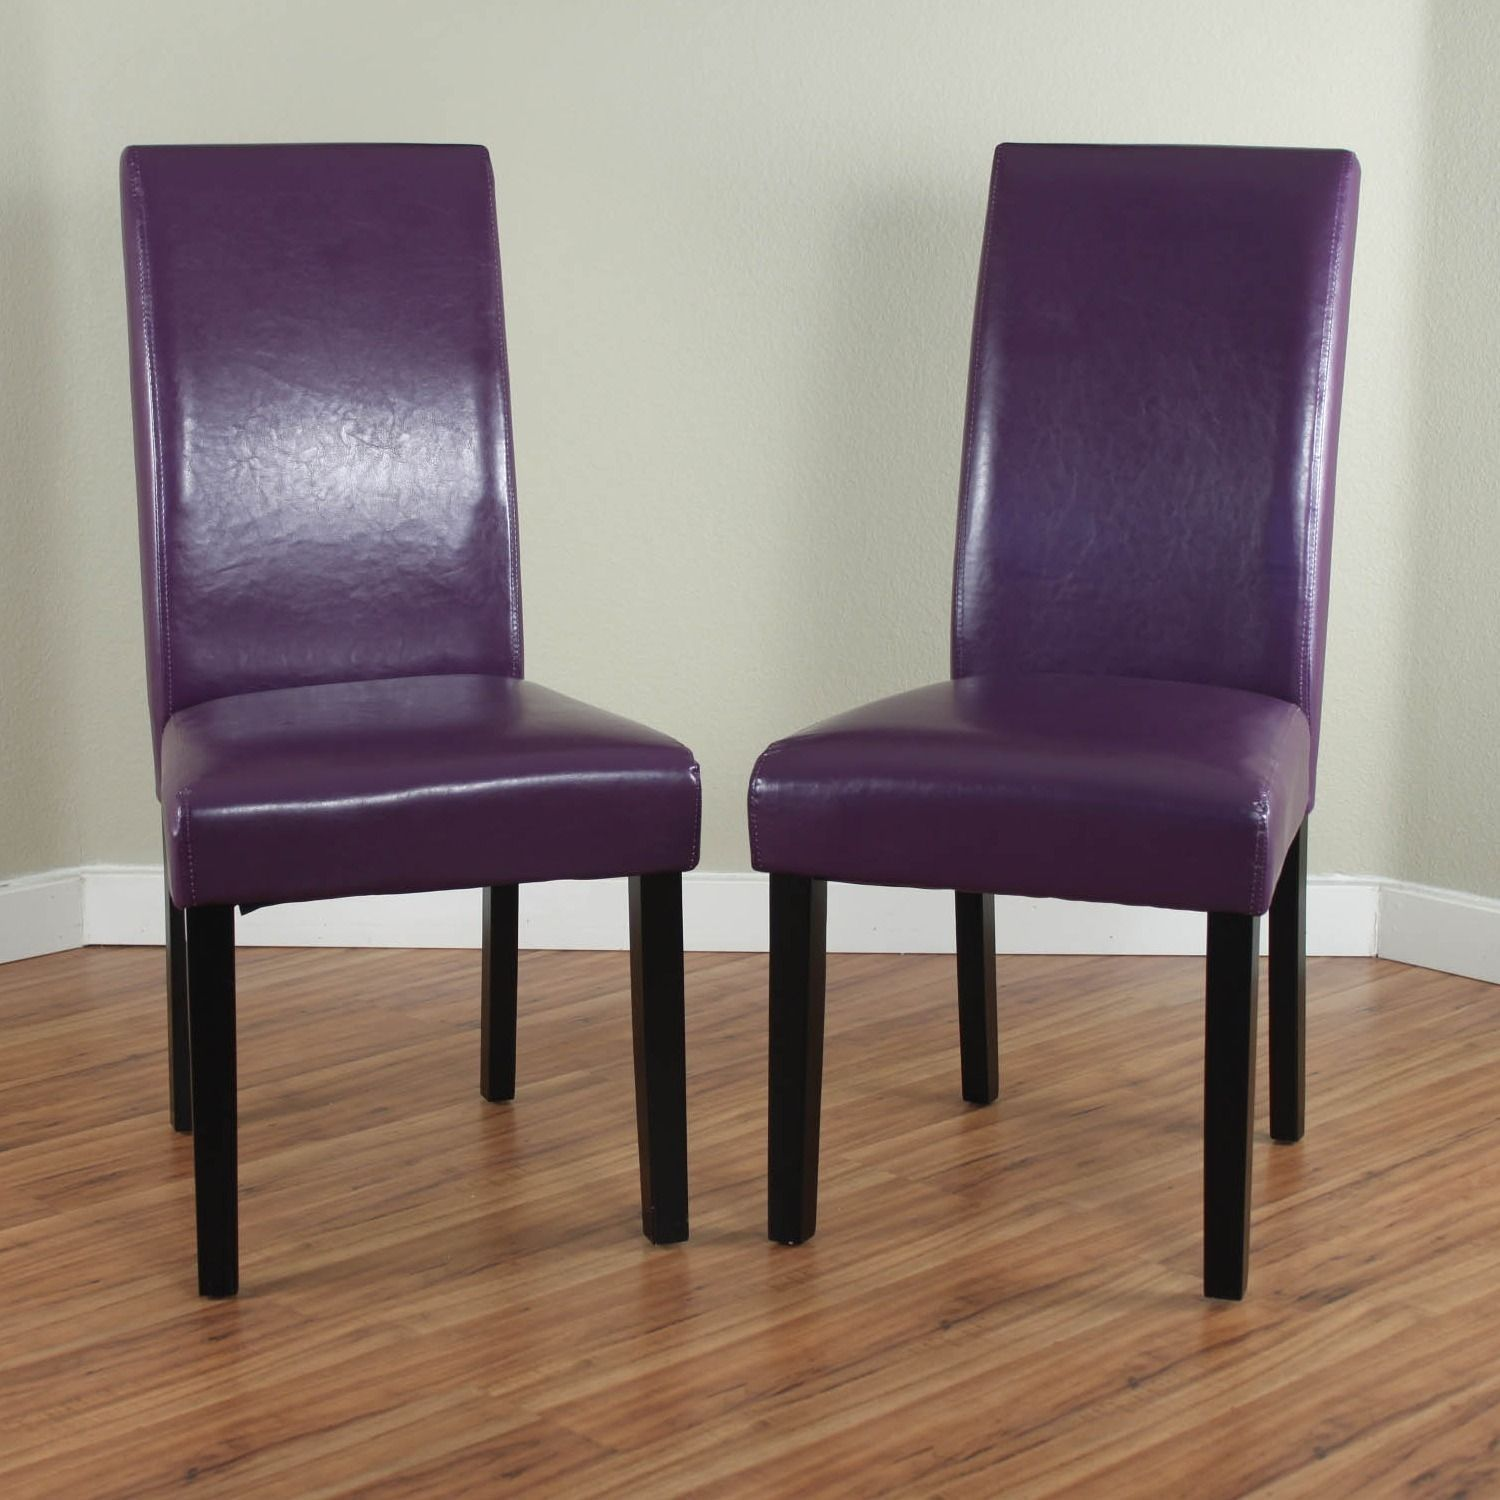 Monsoon Villa Faux Leather Boysenberry Dining Chairs Set Of 2 Purple